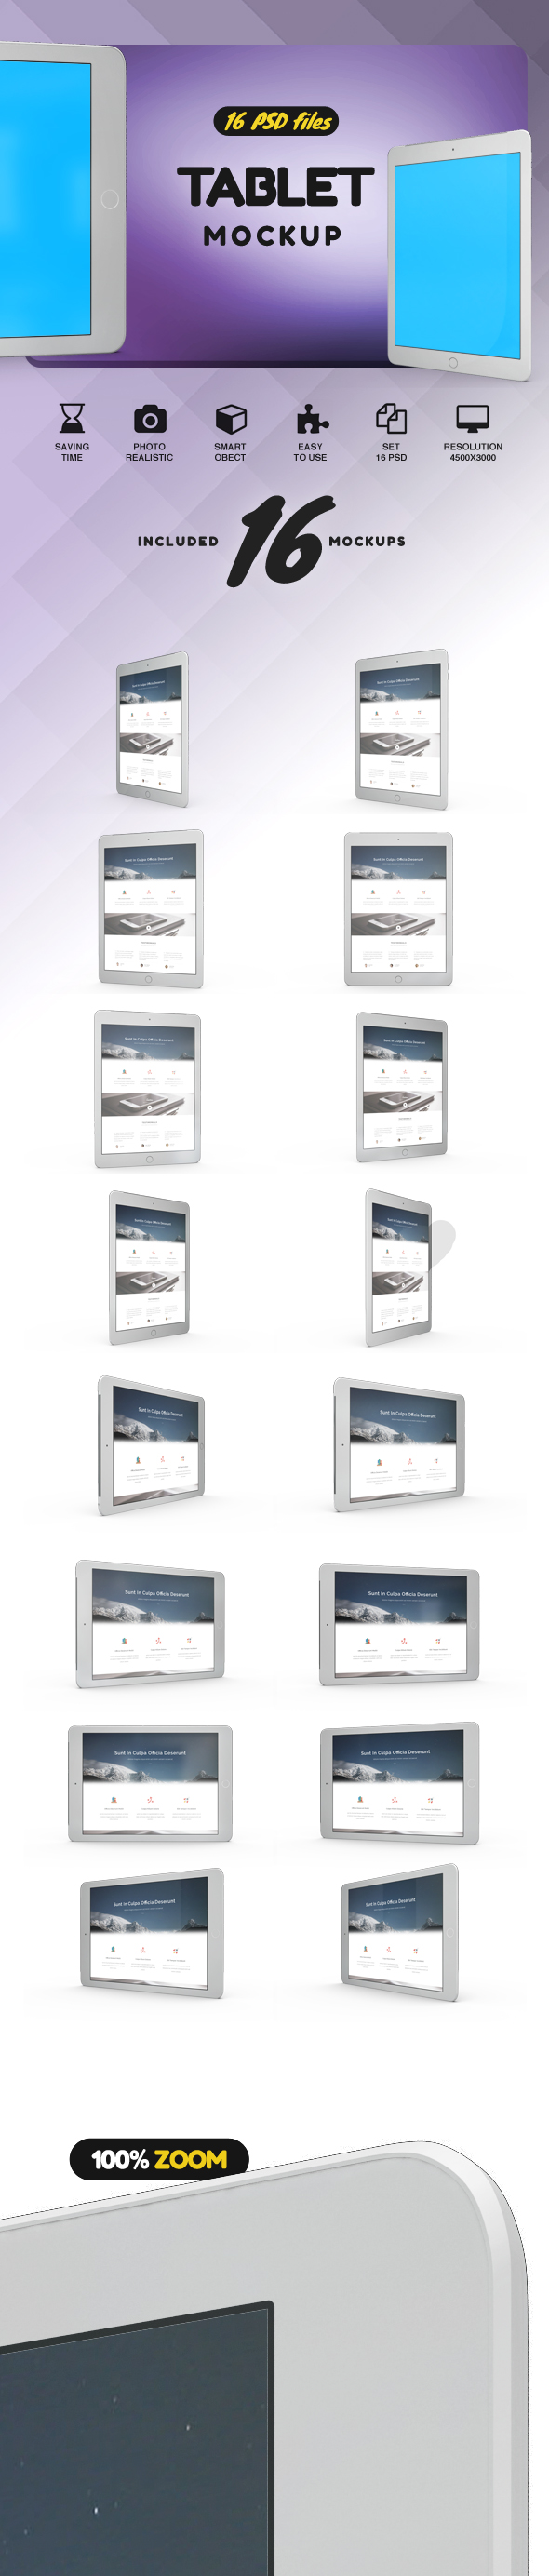 Tablet Mockup example image 2